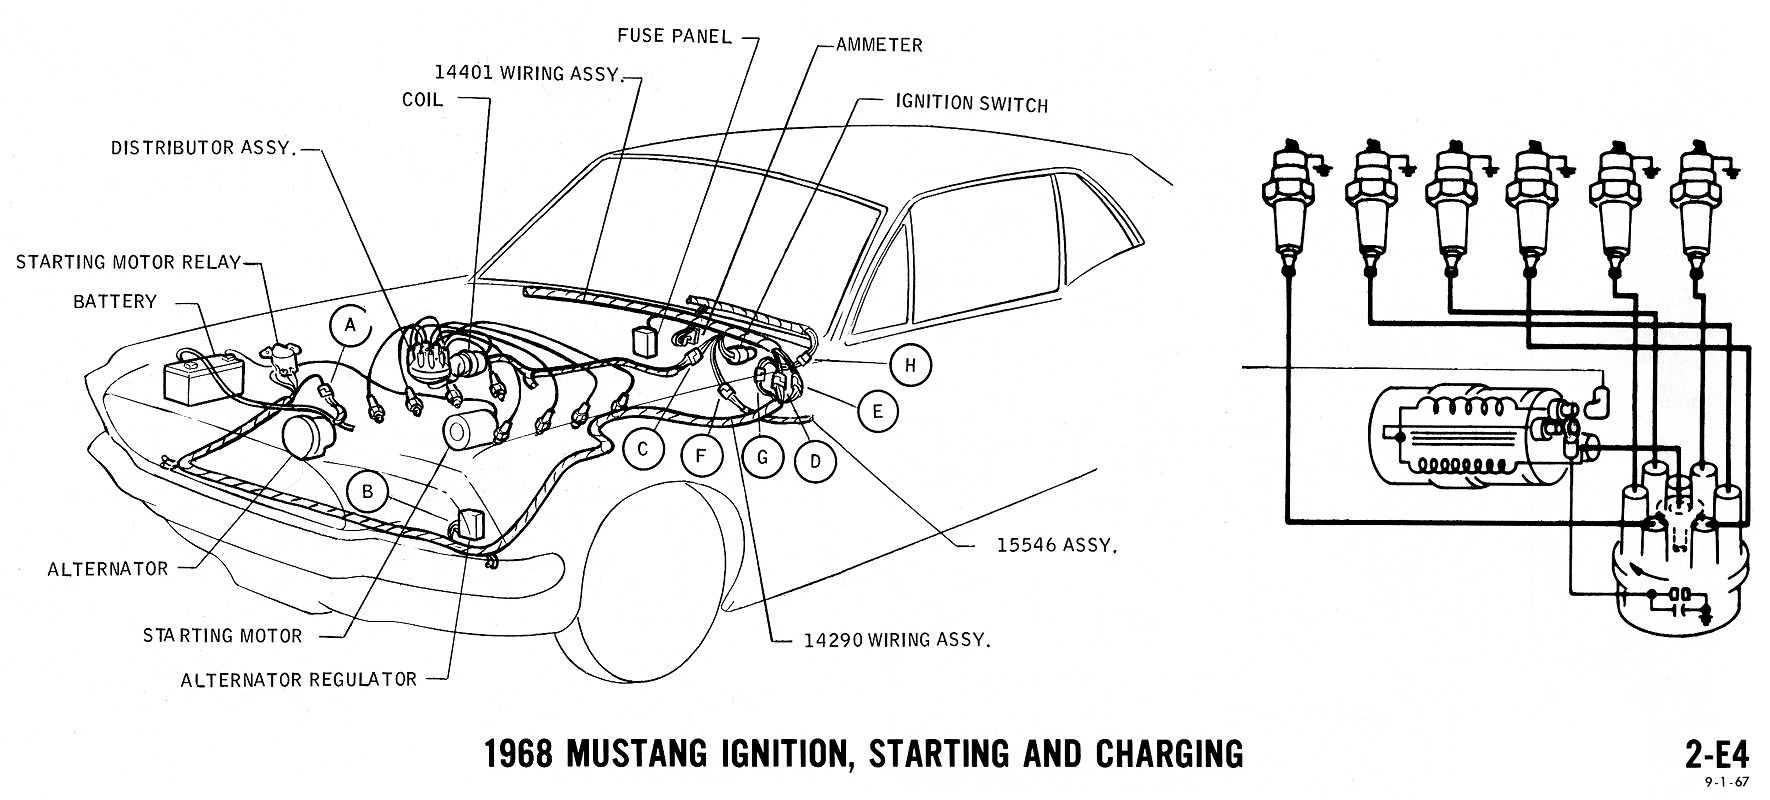 E4 1968 mustang wiring diagrams evolving software 65 mustang alternator wiring diagram at crackthecode.co